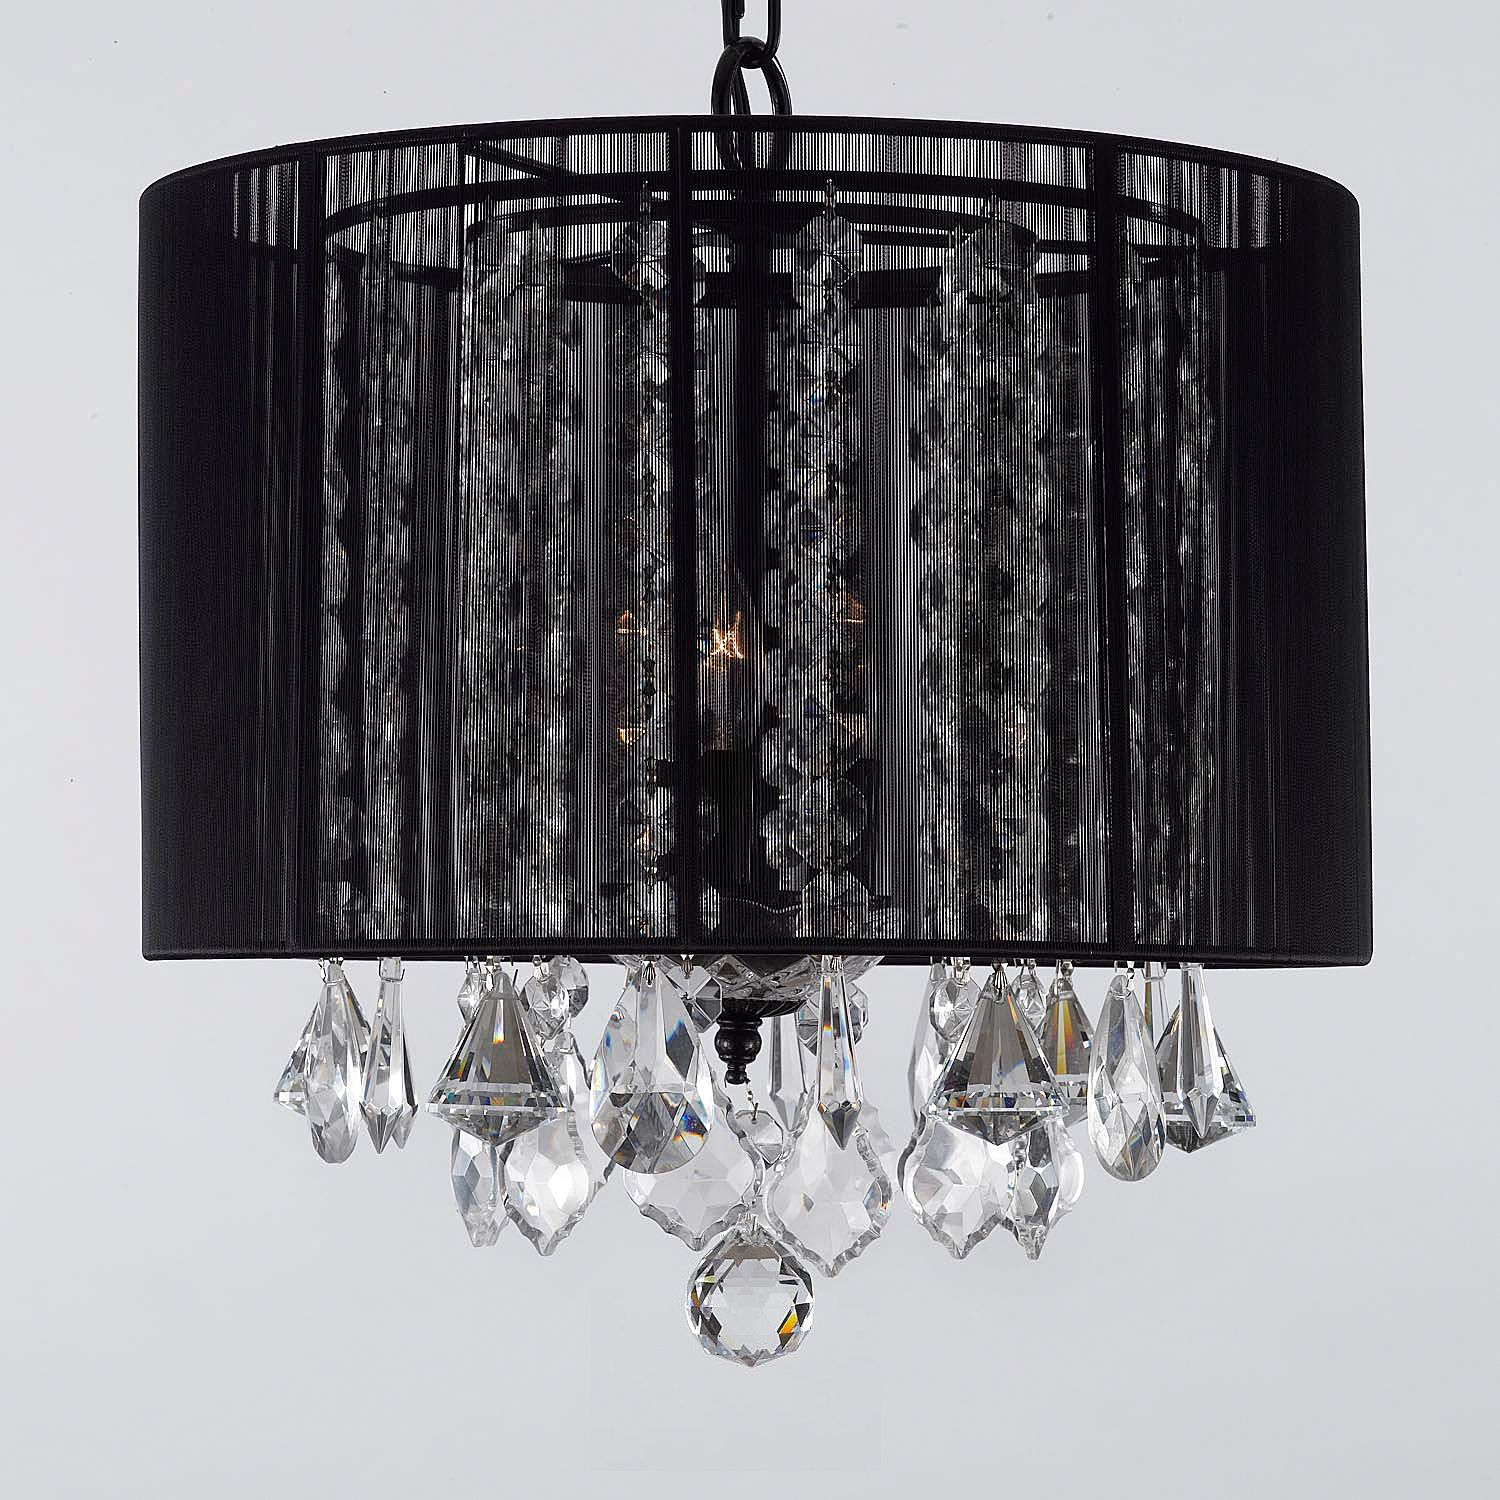 G7 blacksm6043 gallery chandeliers with shades crystal chandelier g7 blacksm6043 gallery chandeliers with shades crystal chandelier with arubaitofo Image collections